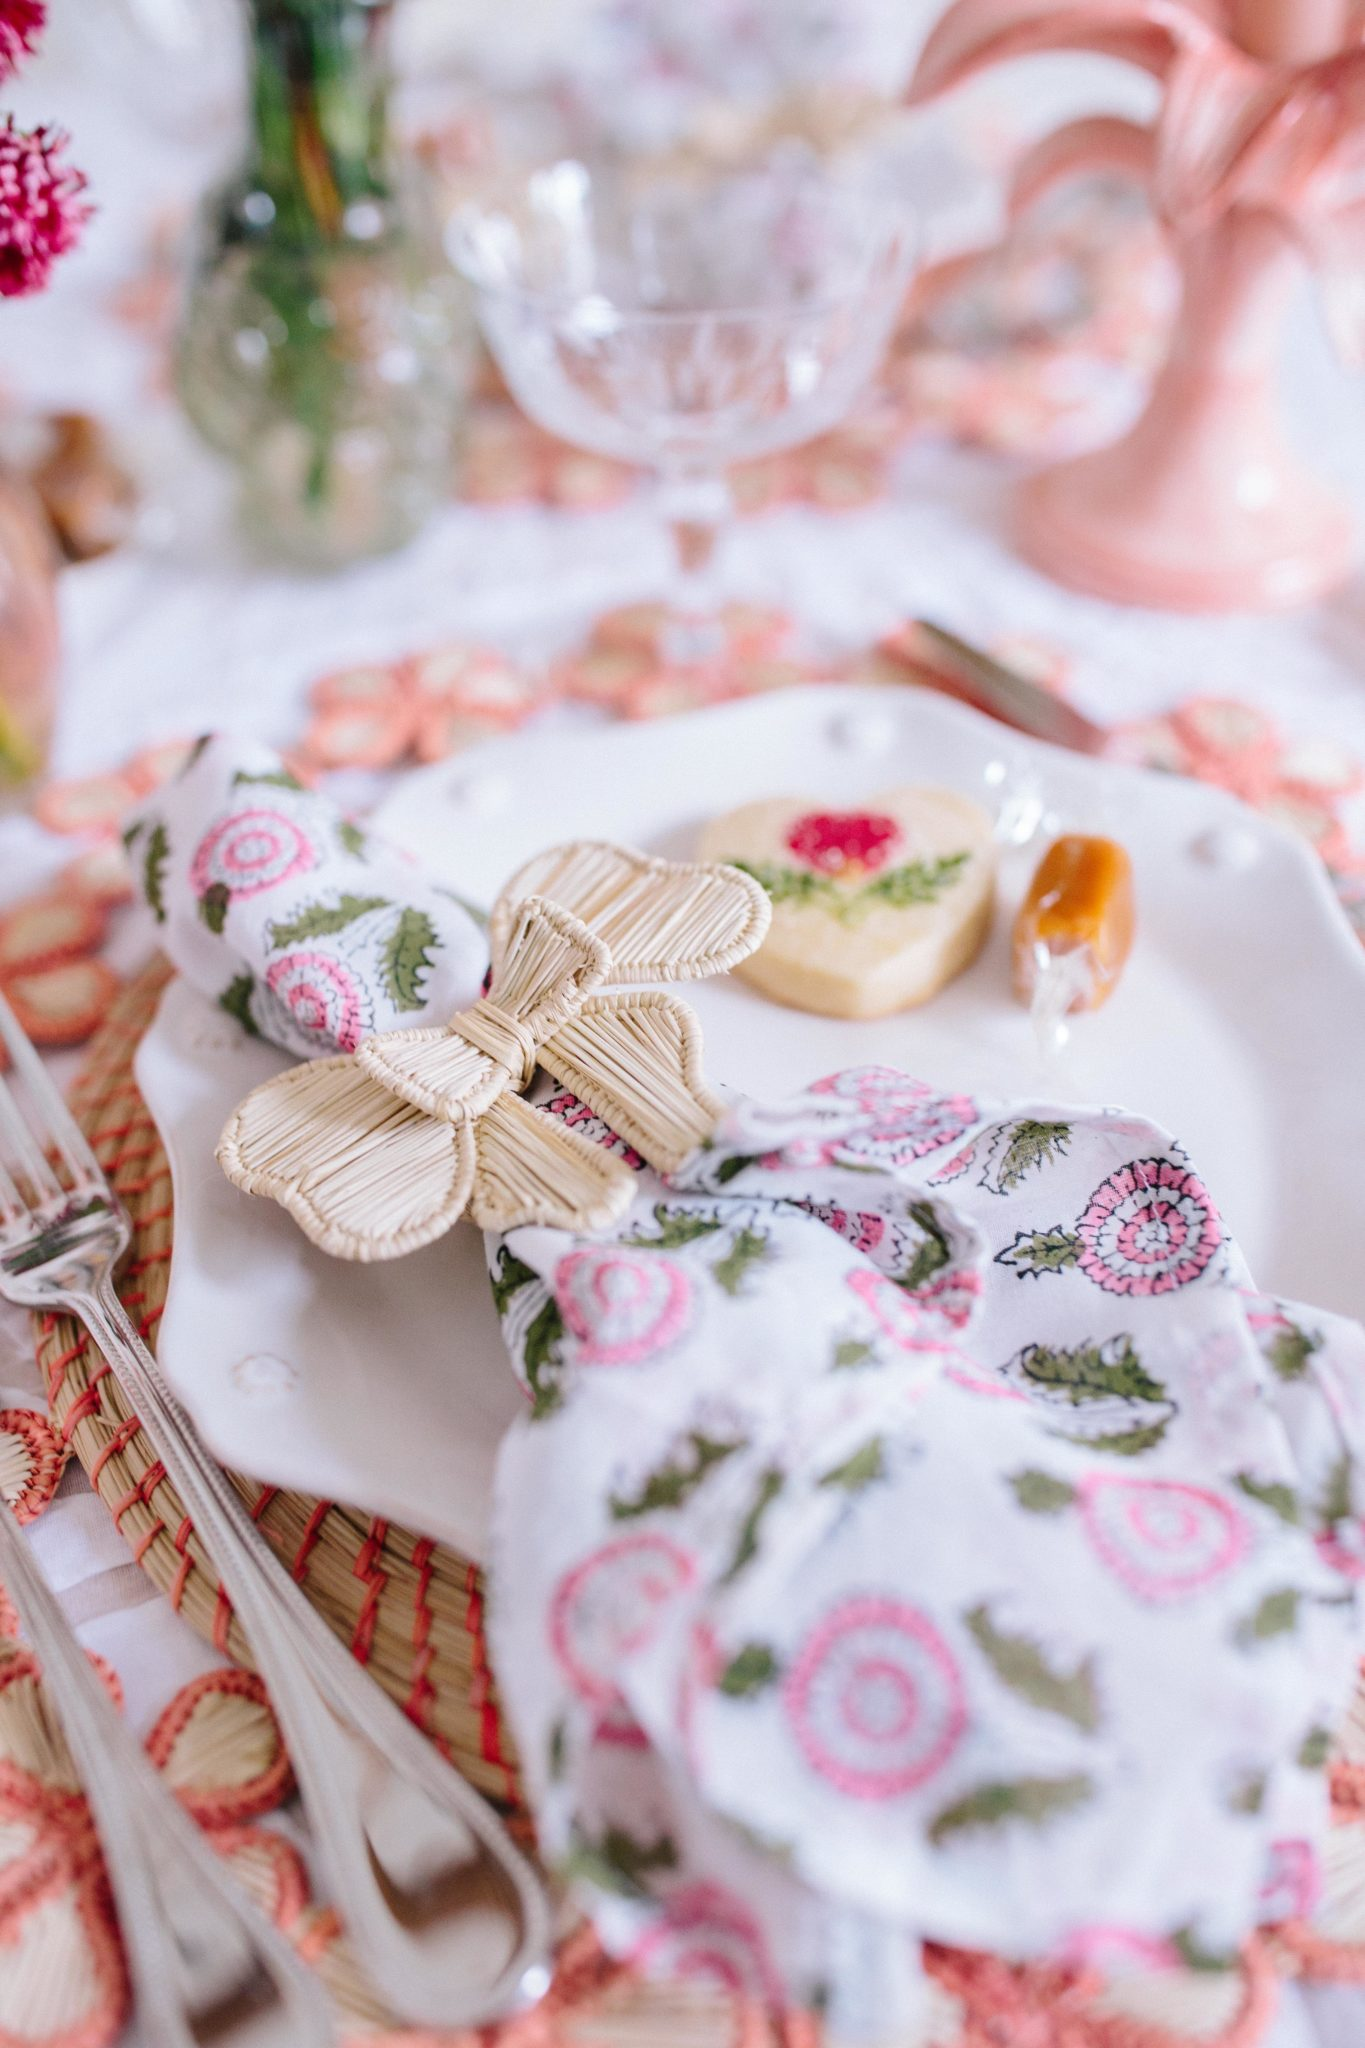 Fresh Ways To Dress Up Your Spring Tablescapes | Rhyme & Reason